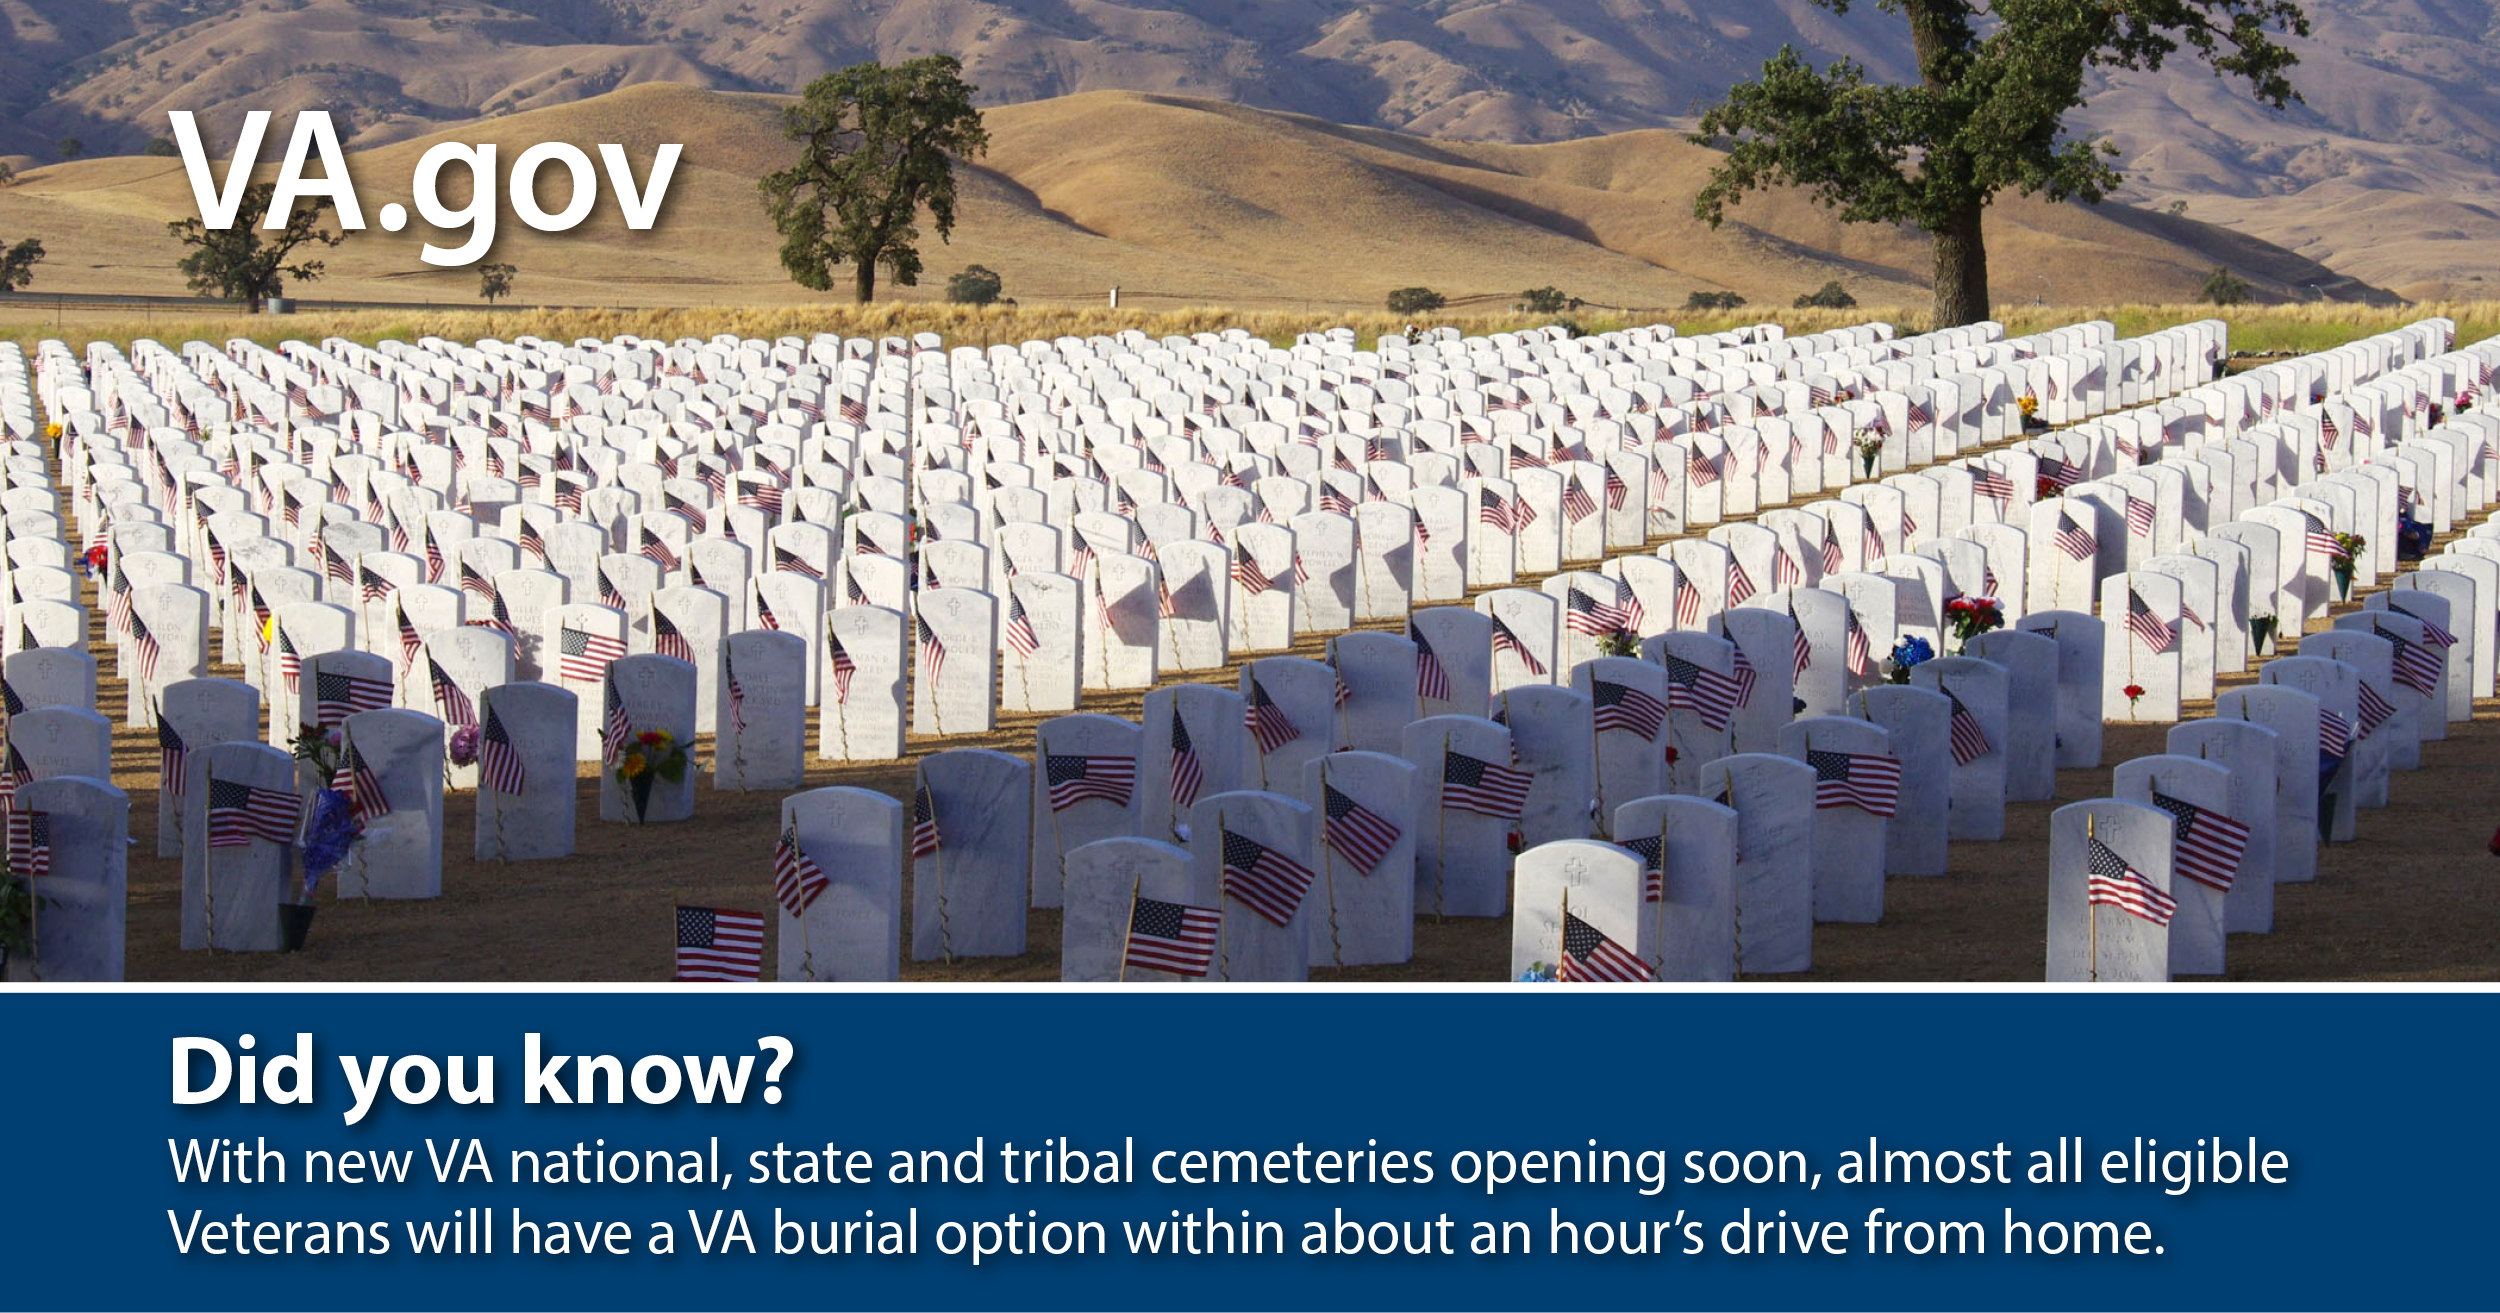 VA offers dignified burial options